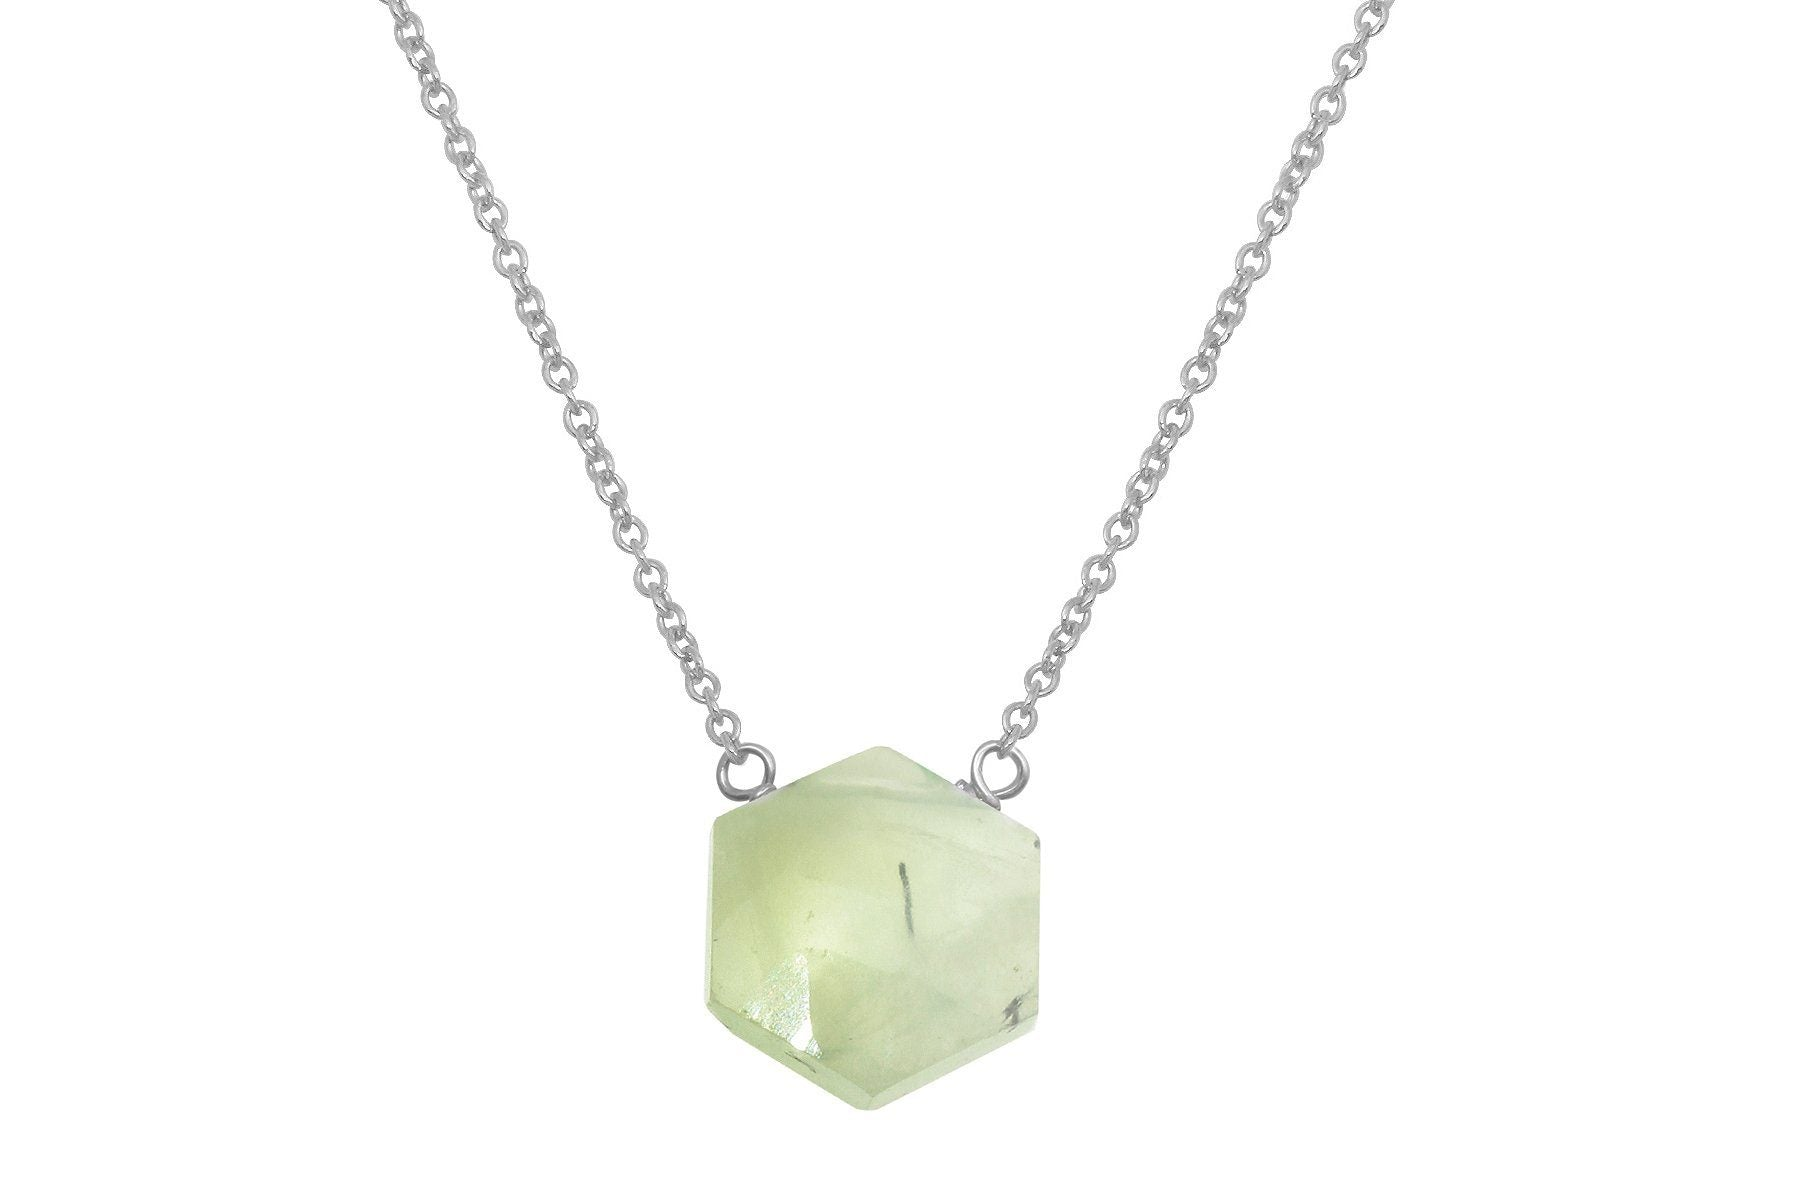 Prehnite hexagon sterling silver necklace - Amanda K Lockrow